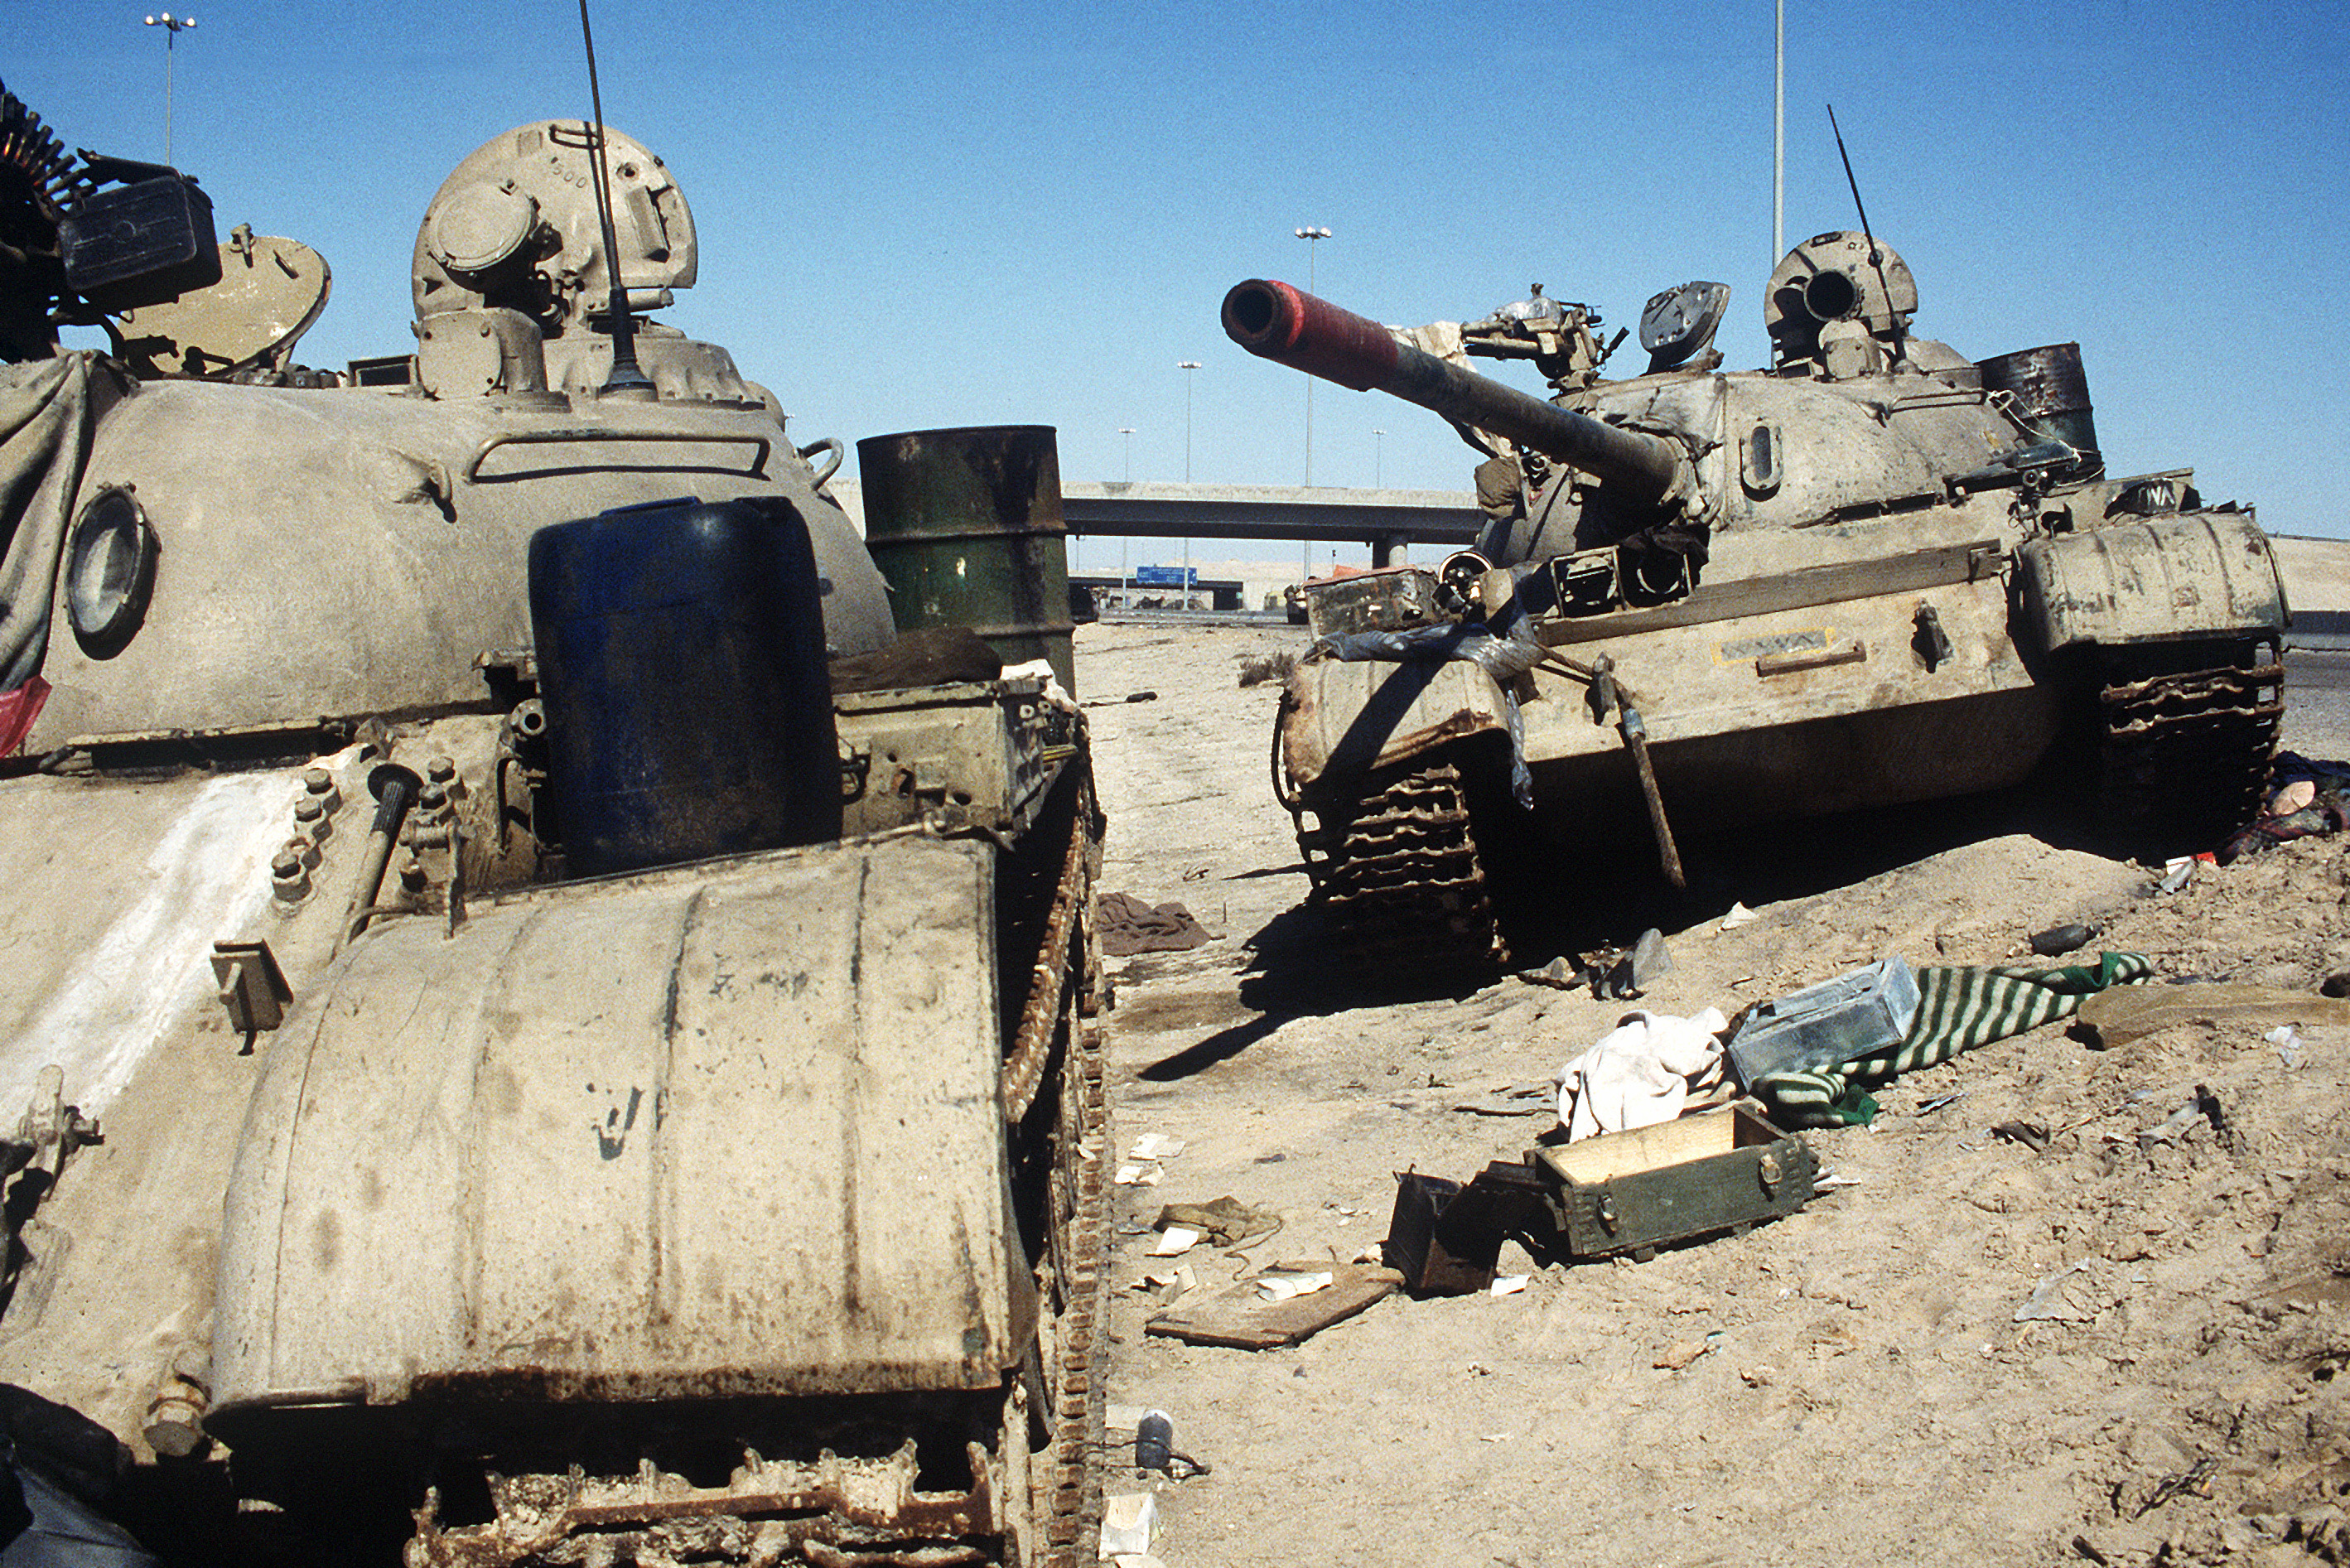 where is zil on the map with File An Iraqi T 54  T 55 Or Type 59 And T 55a On Basra Kuwait Highway Near Kuwait on Zilean Wallpapers in addition 1962 20variomatic also Beach furthermore 7404116446 further Raffles Praslin Seychelles.